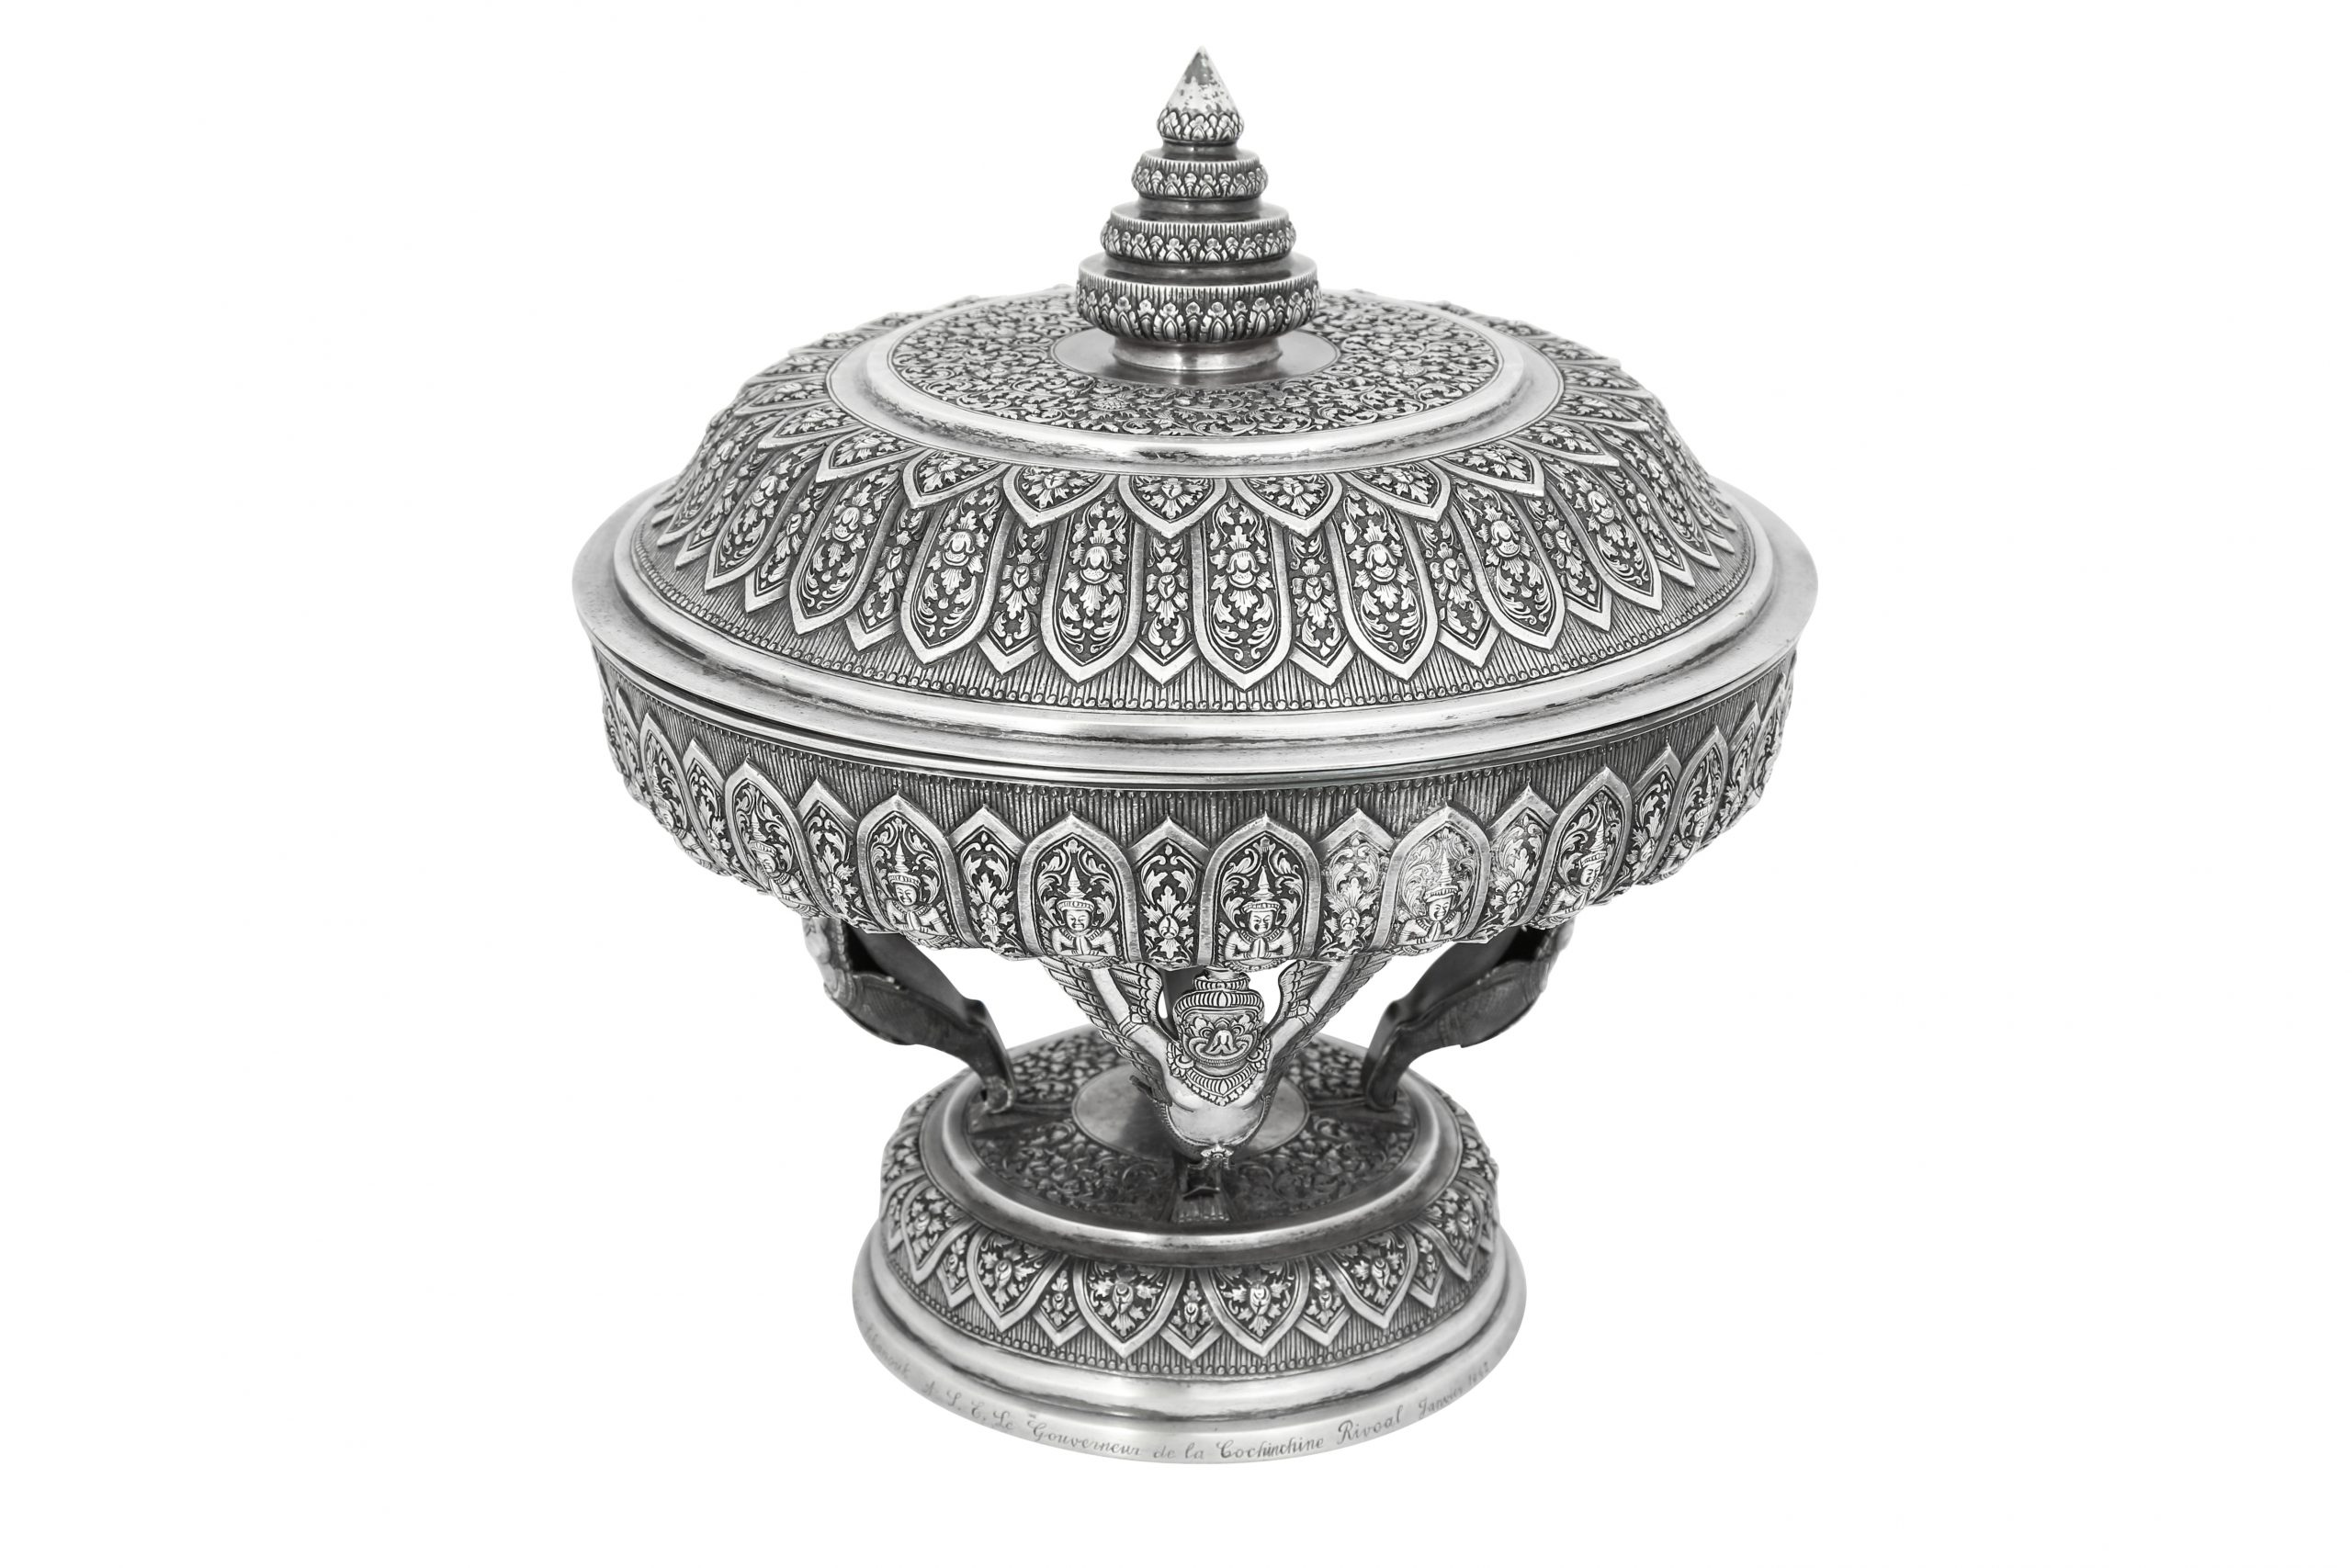 A large silver repoussé lidded ceremonial tray or basin (tok). Thailand or Cambodia, South East Asia, 19th century. Estimate £2,400 - £2,600